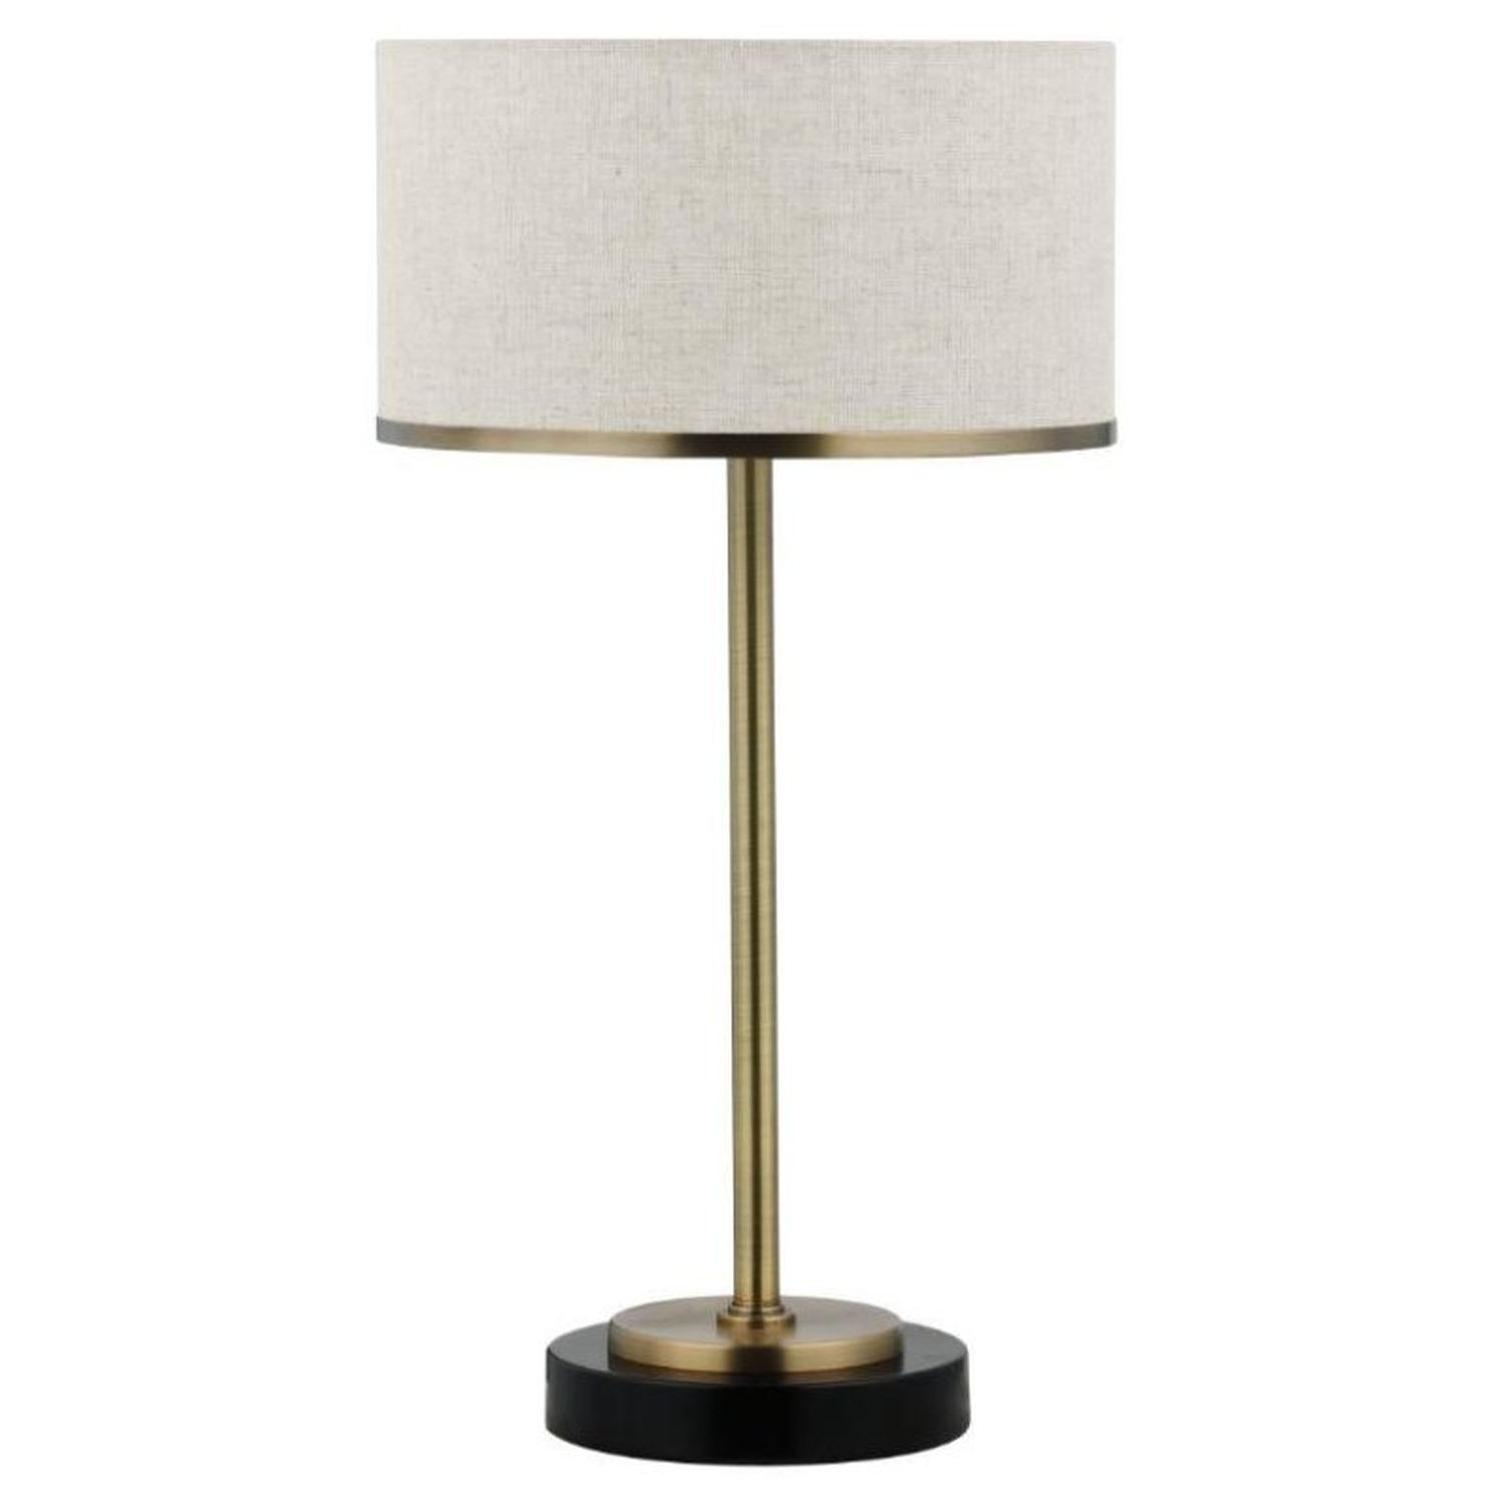 Table Lamp w/ Perpendicular Lines in an Architectural Frame - image-12